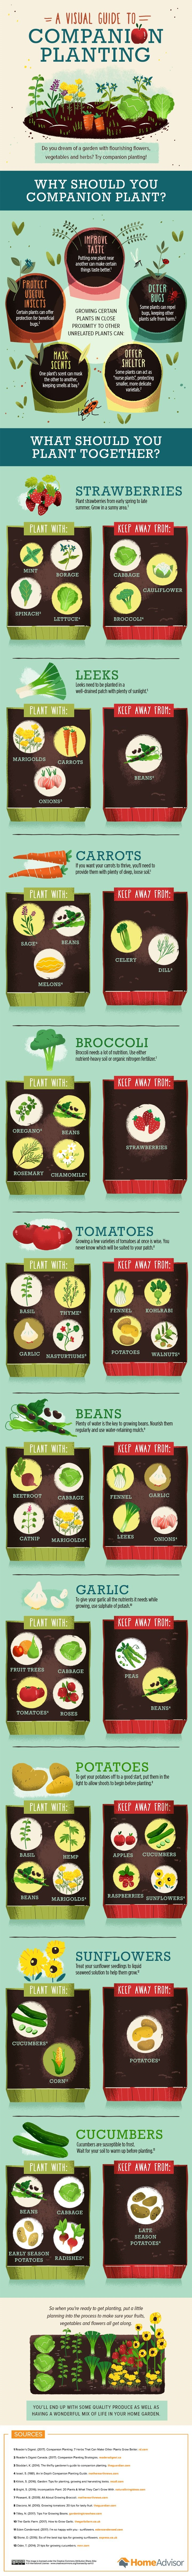 companion planting: a visual guide